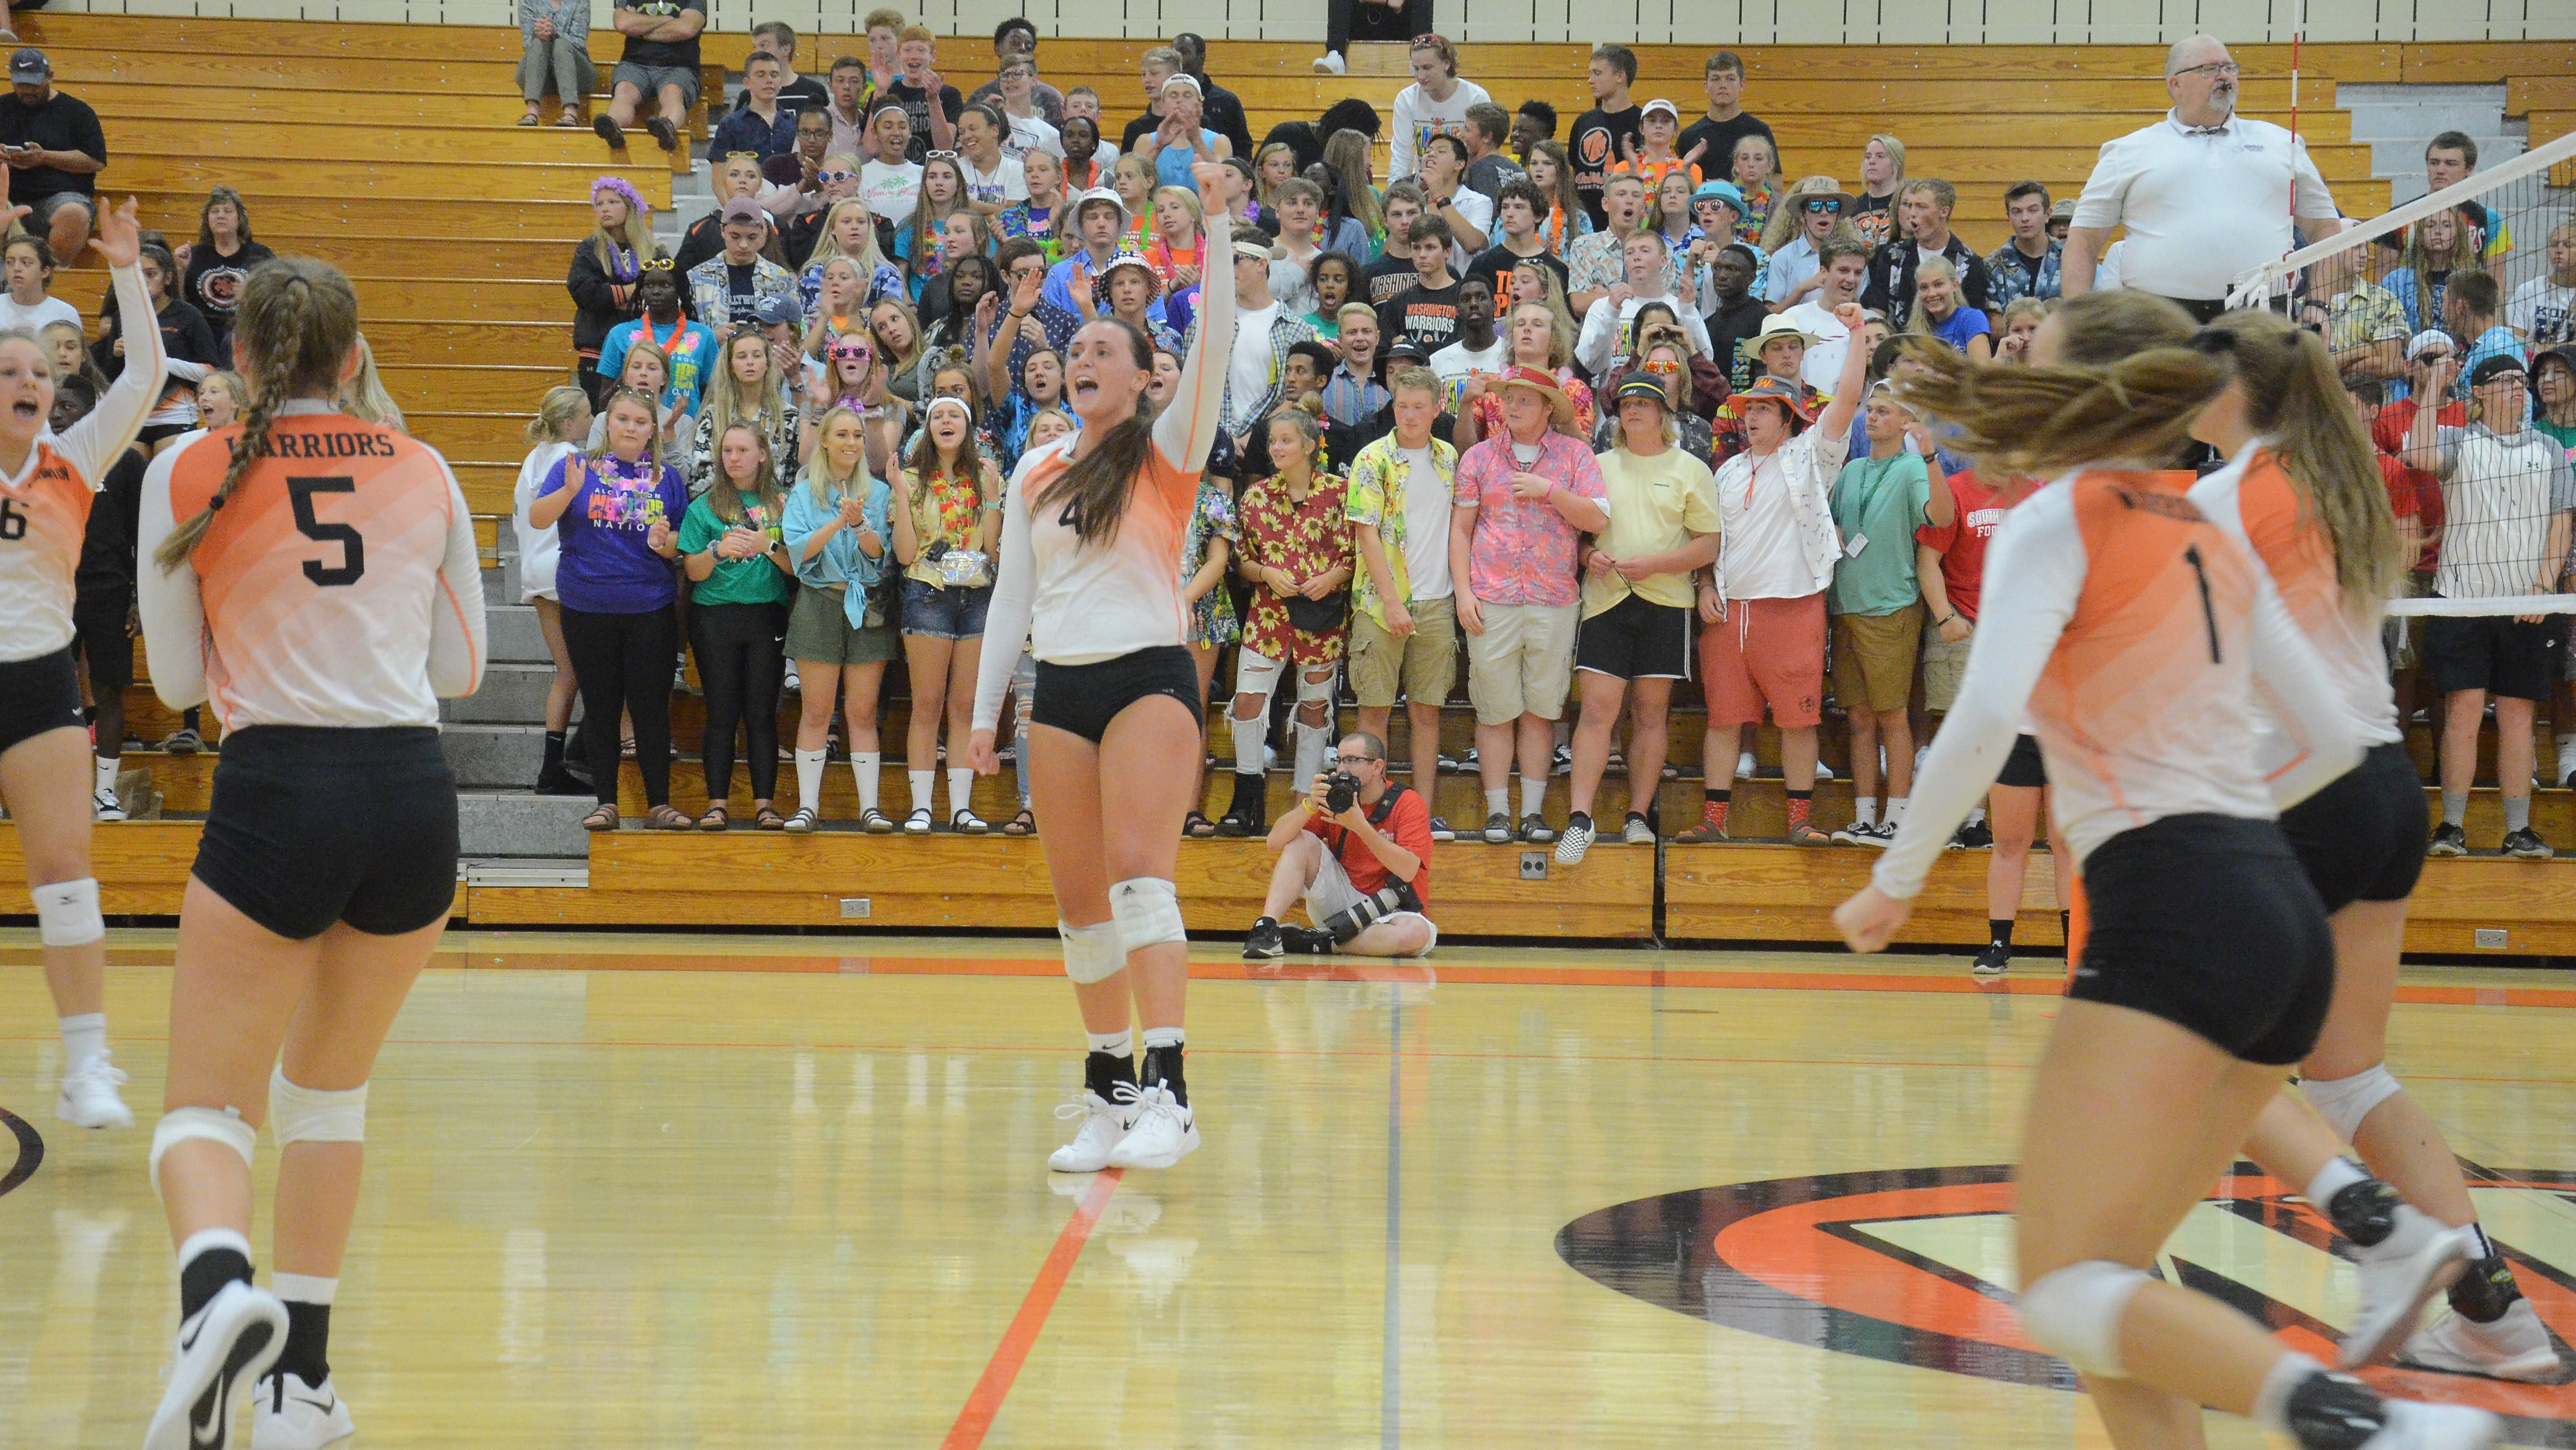 Washington's Lilly Bartling celebrates a point vs. Roosevelt on August 30.